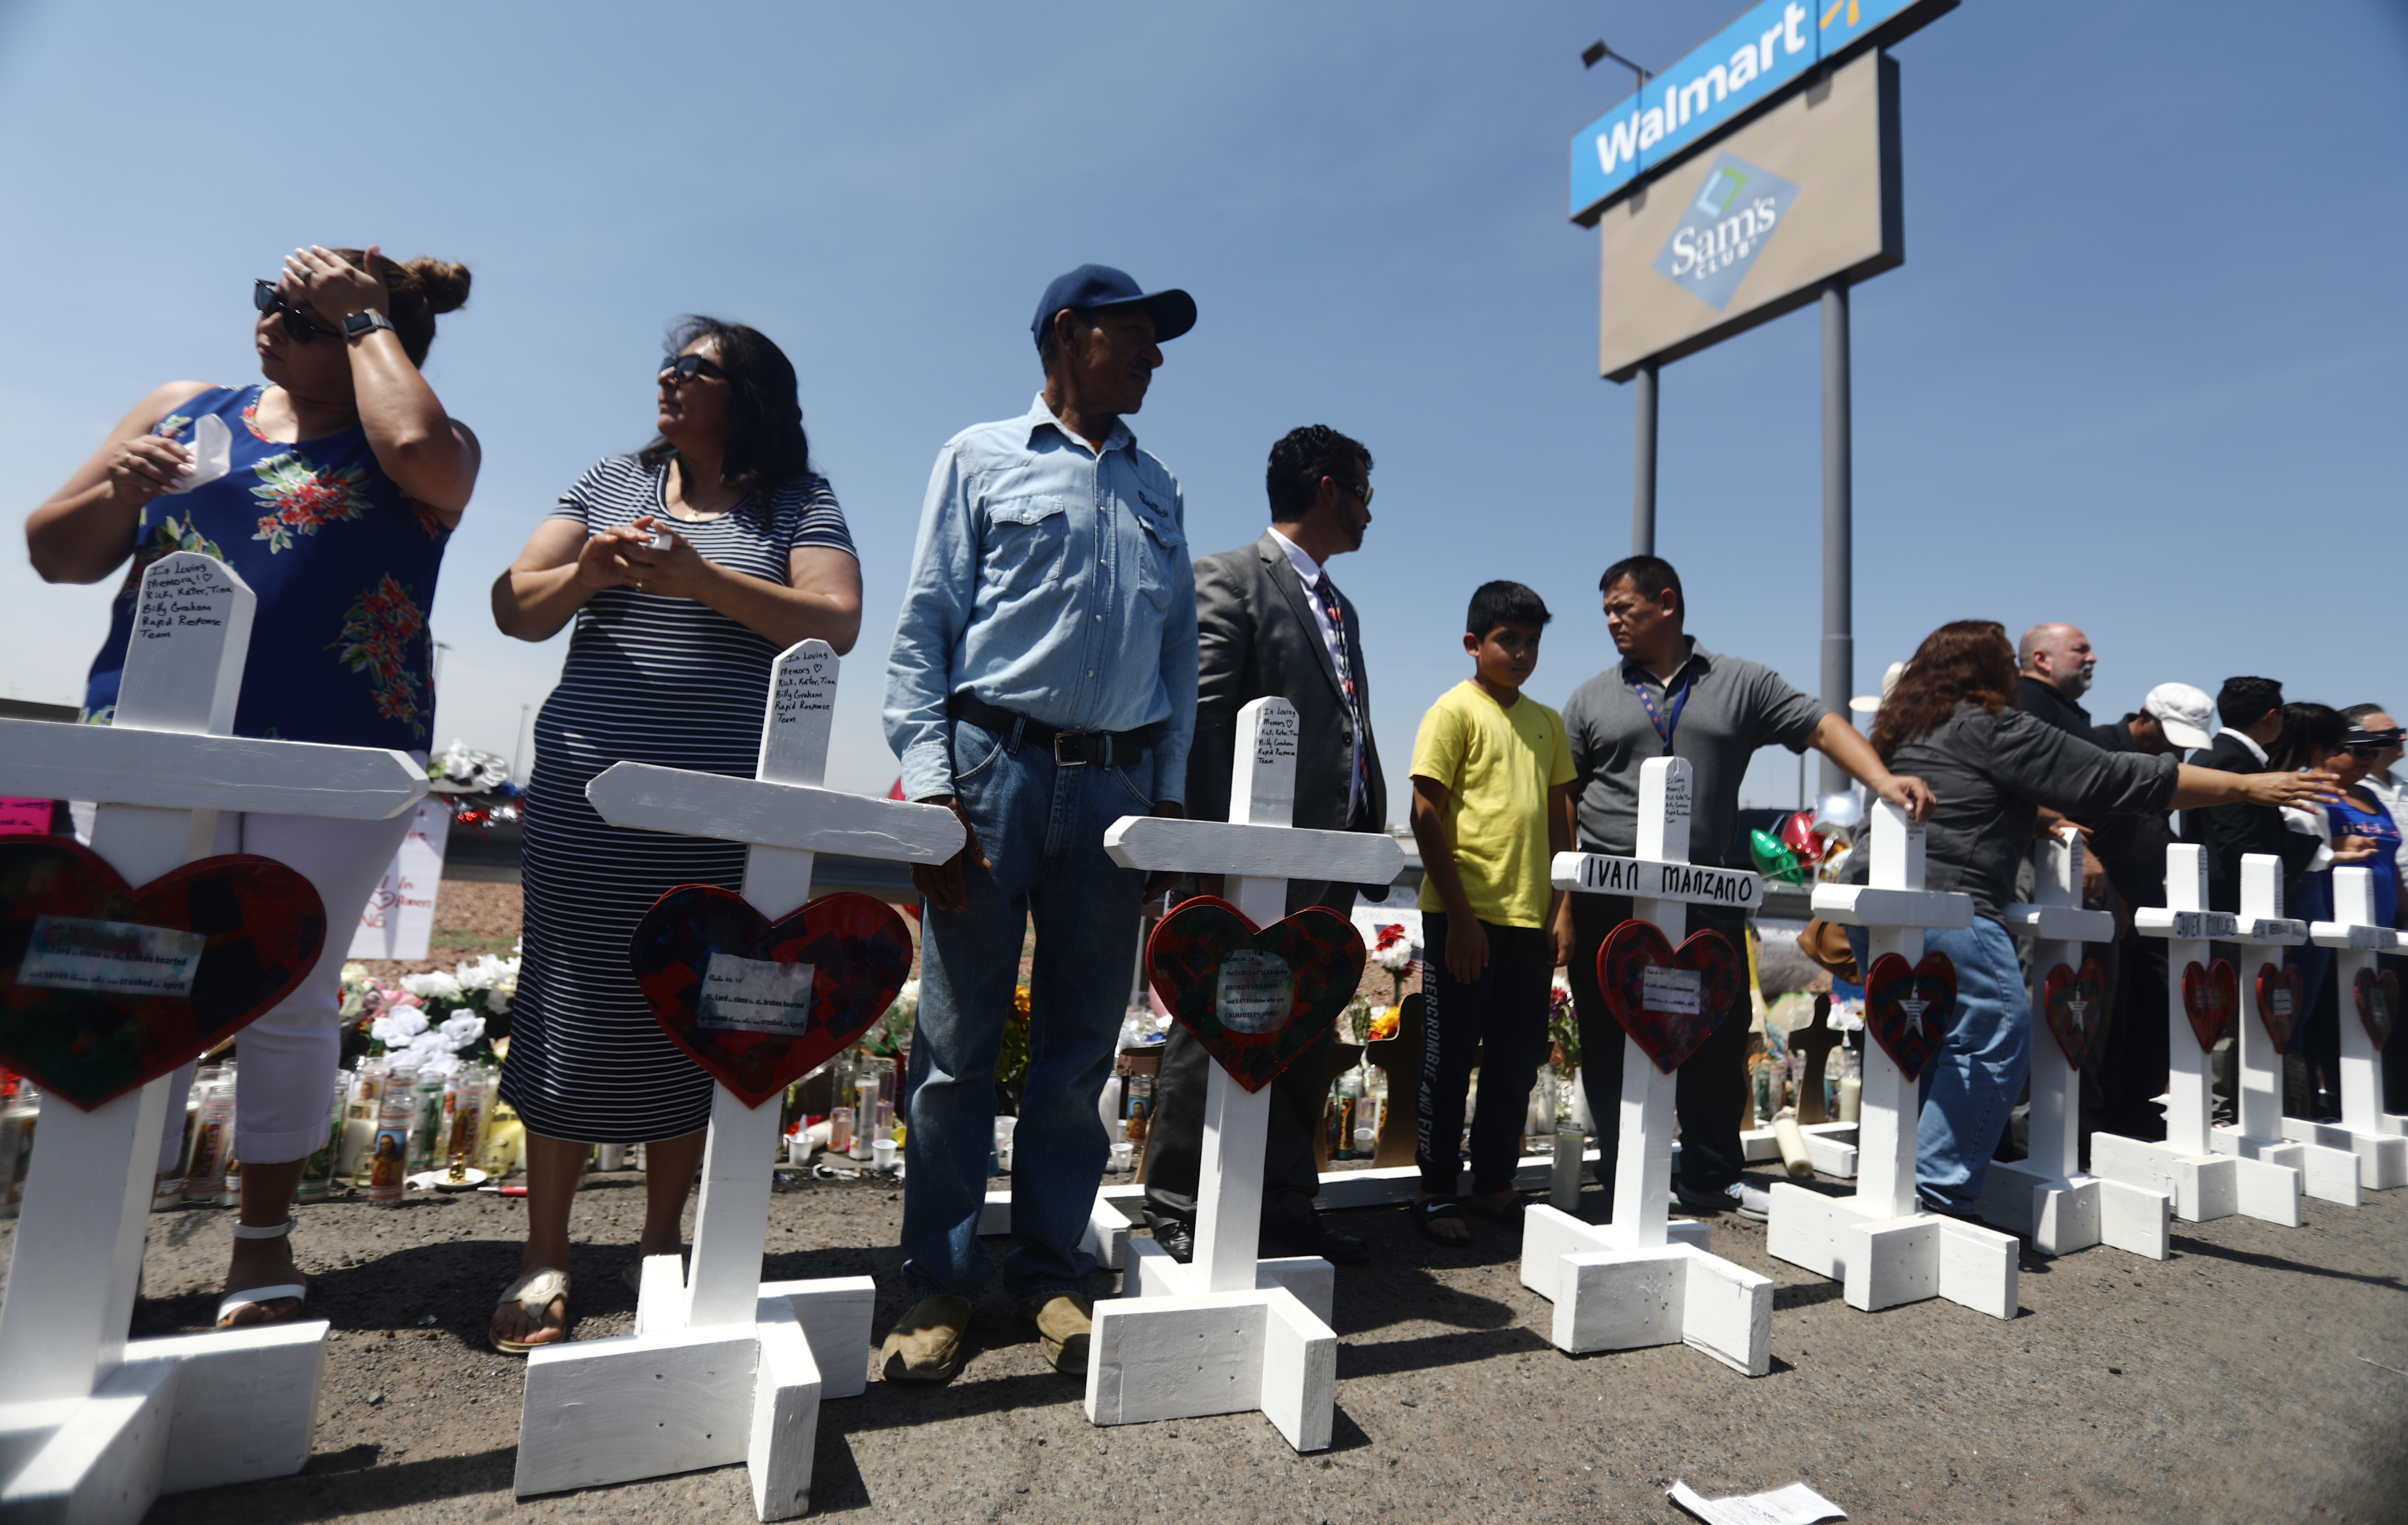 Volunteers stand with handmade crosses memorializing the victims of a mass shooting in El Paso.